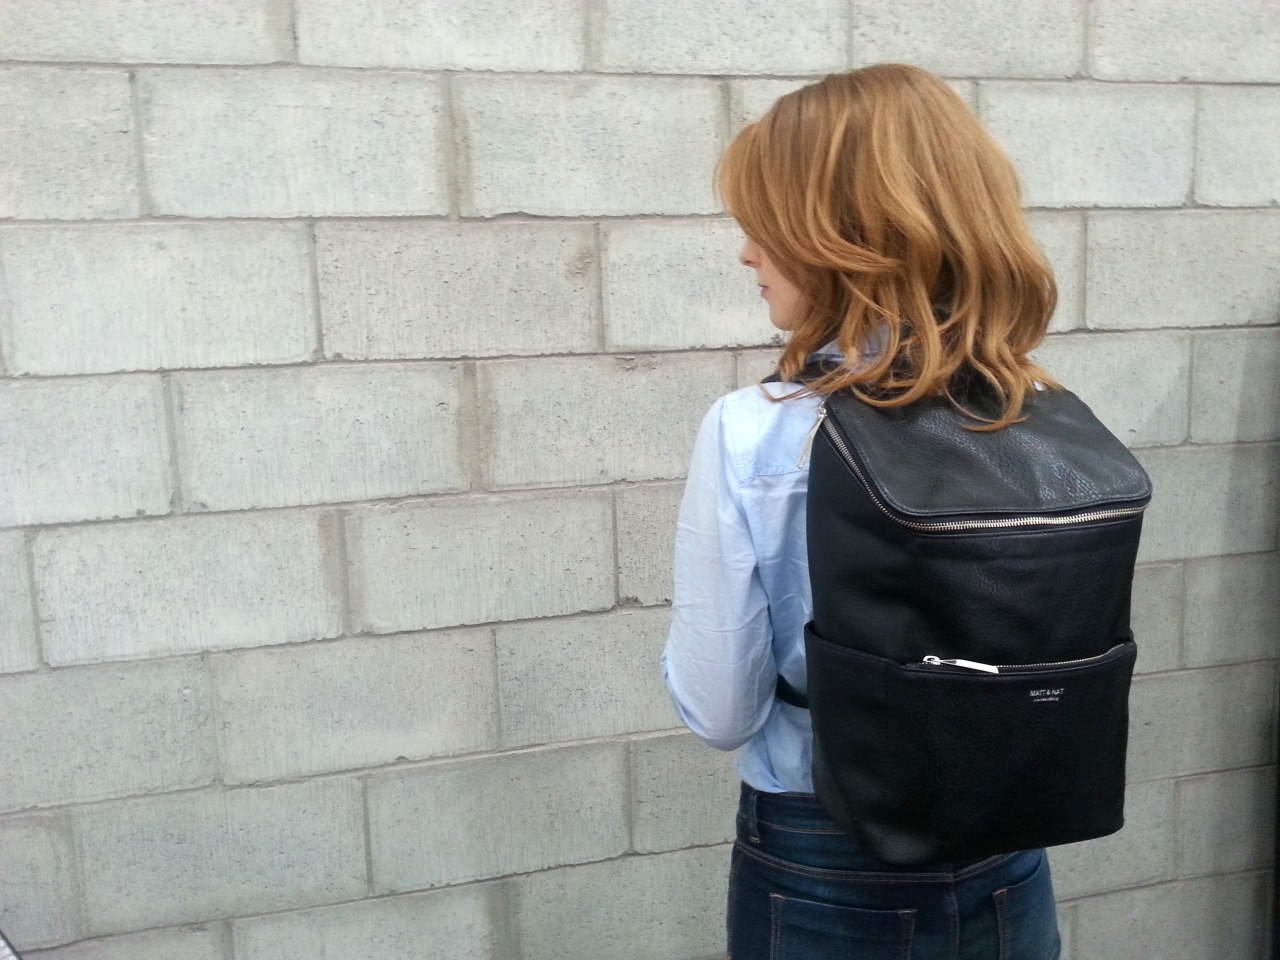 Ellen wearing the Brave backpack